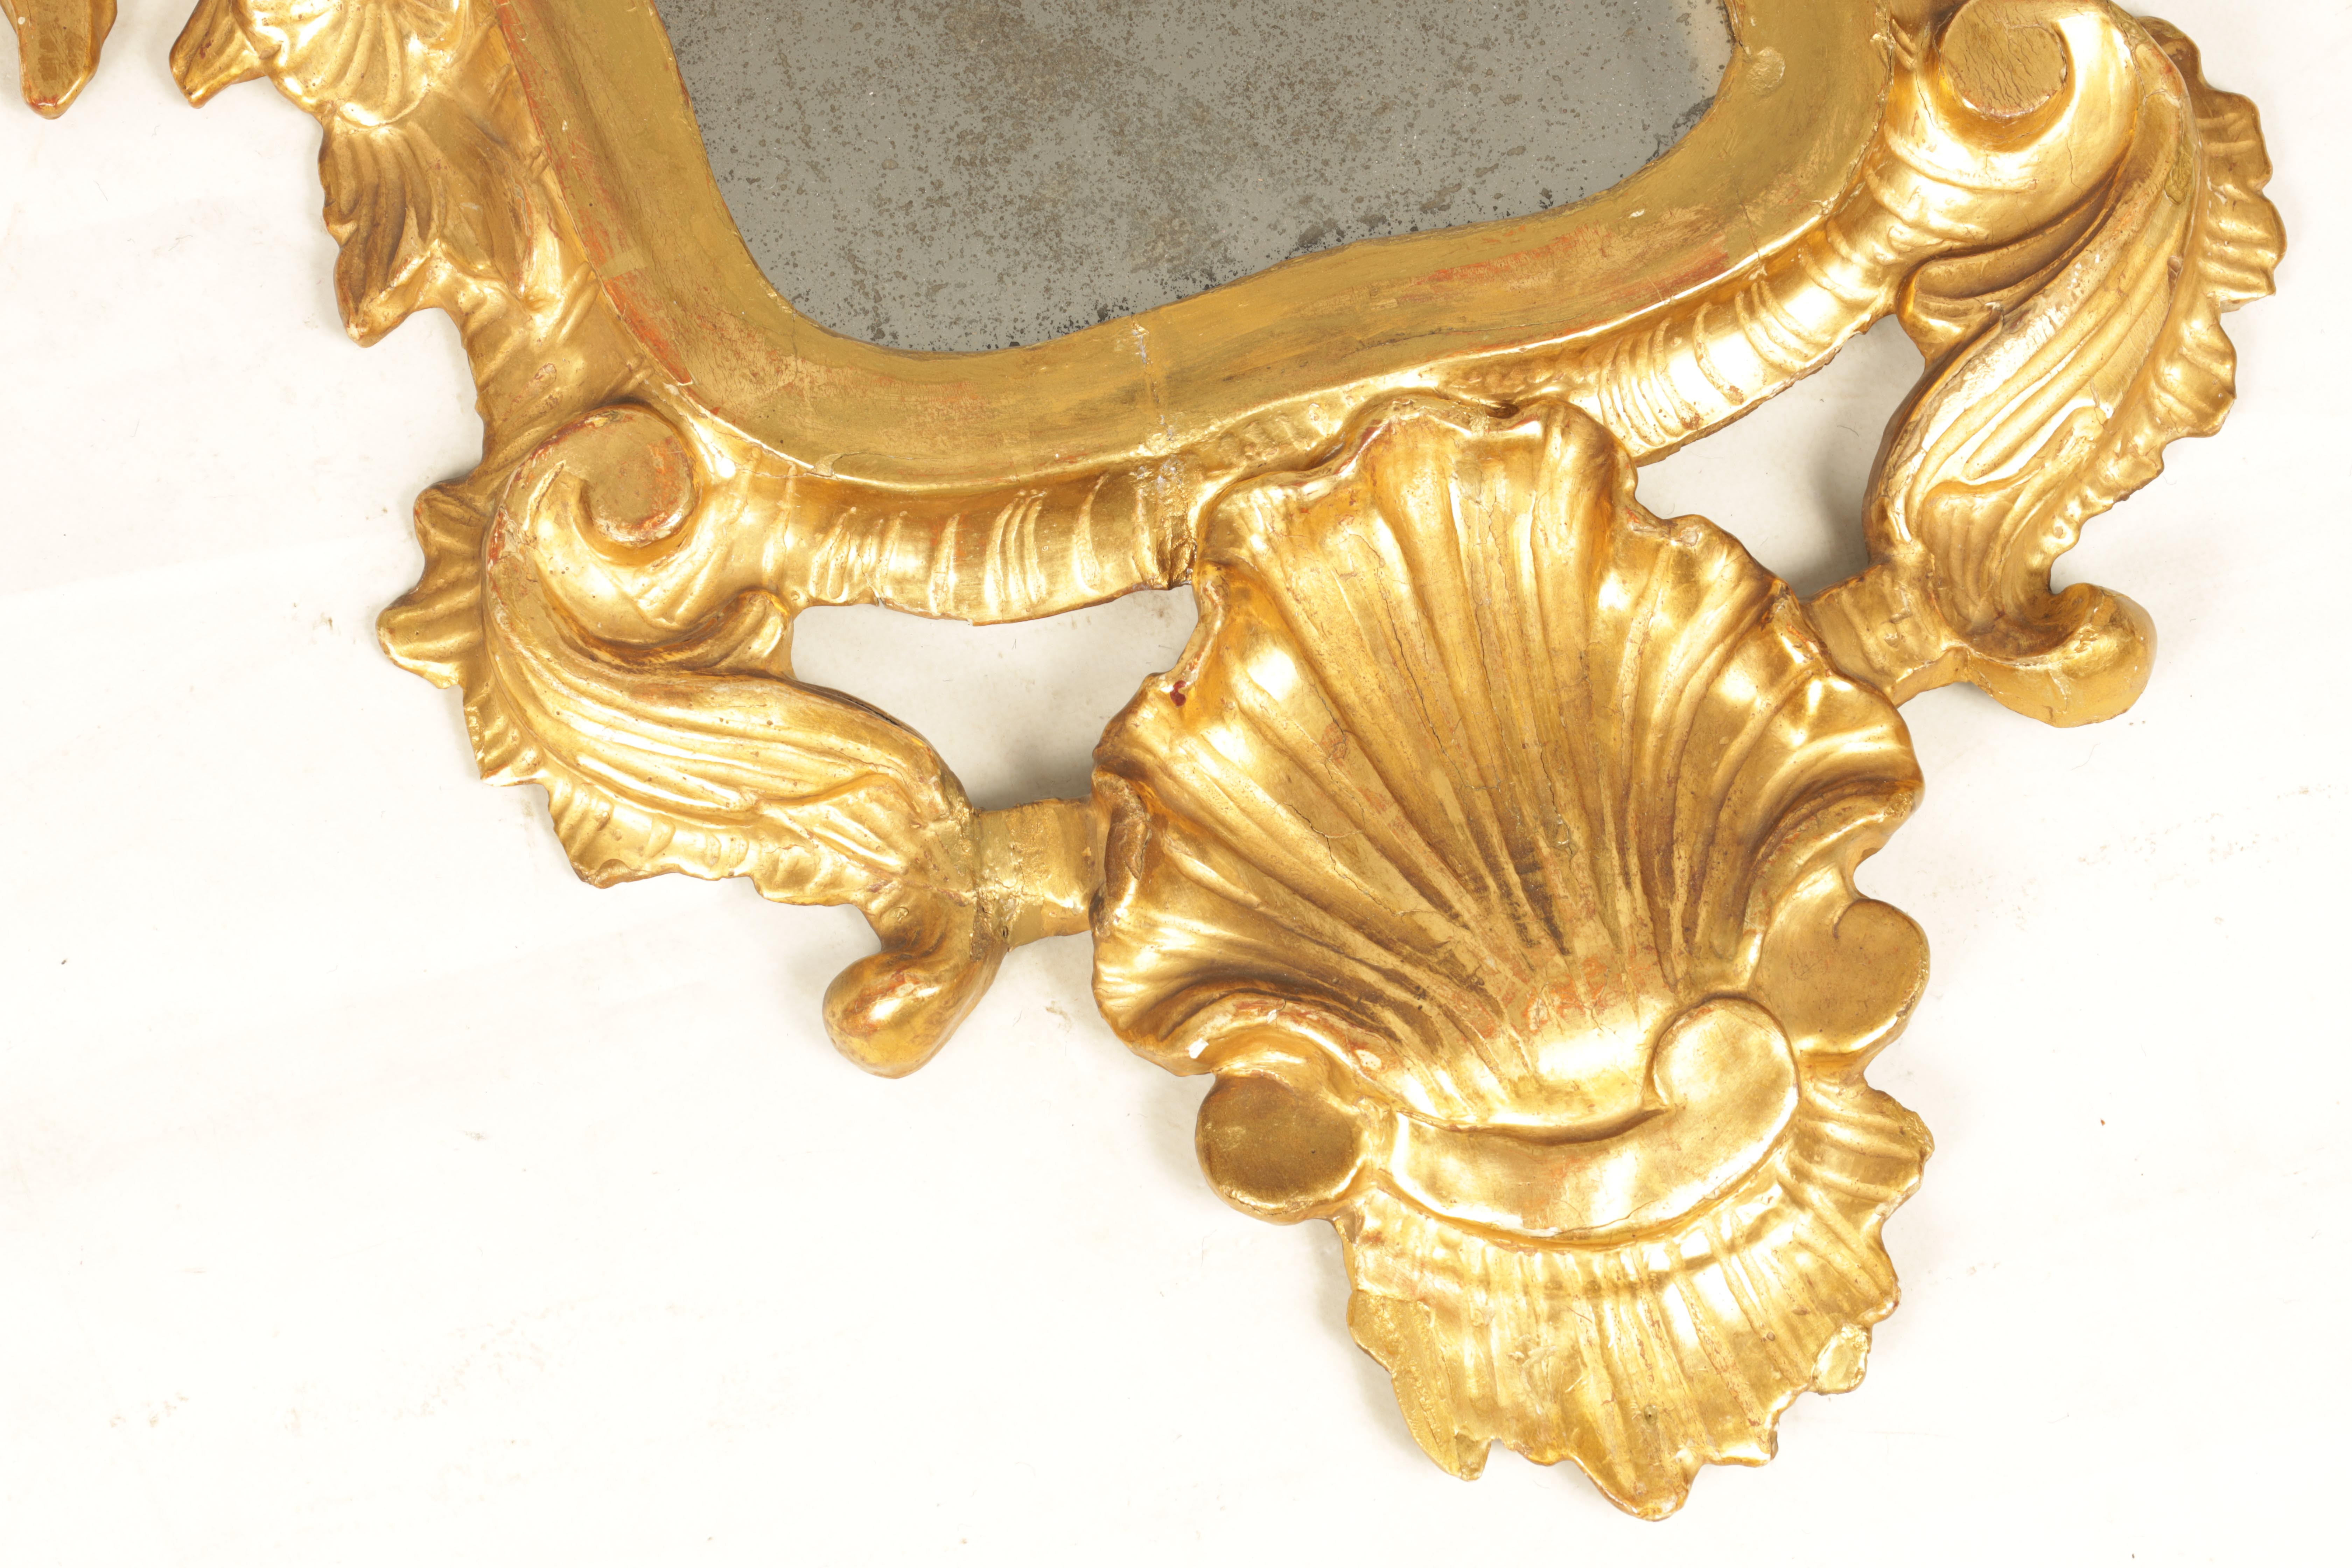 A PAIR OF 19TH CENTURY CARVED GILT WOOD ITALIAN FLORENTINE MIRRORS with leaf and shell carved frames - Image 6 of 8